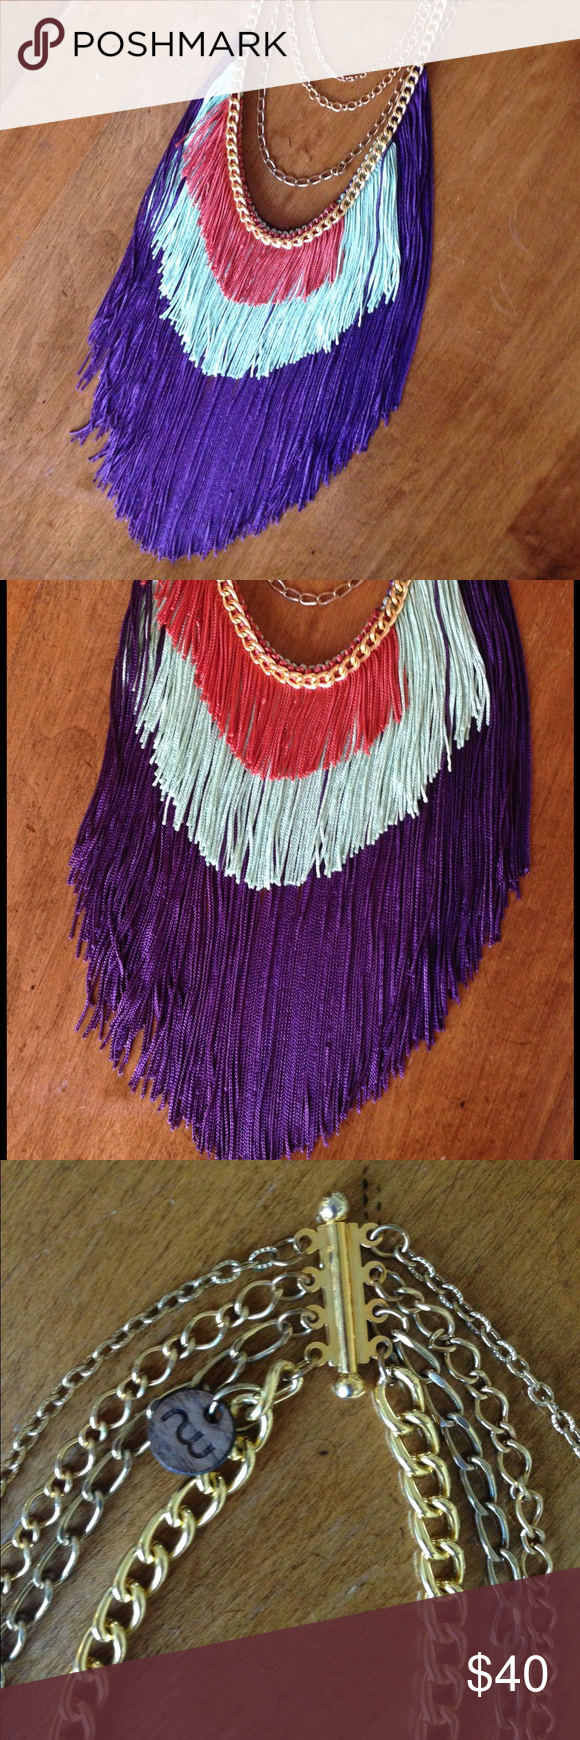 Fringe necklace by Norwegian Wood Beautiful fringe necklace bought from Etsy seller Norwegian Wood. This is a wow piece! Please note: this necklace is not completely symmetrical. Please see pictures. Jewelry Necklaces